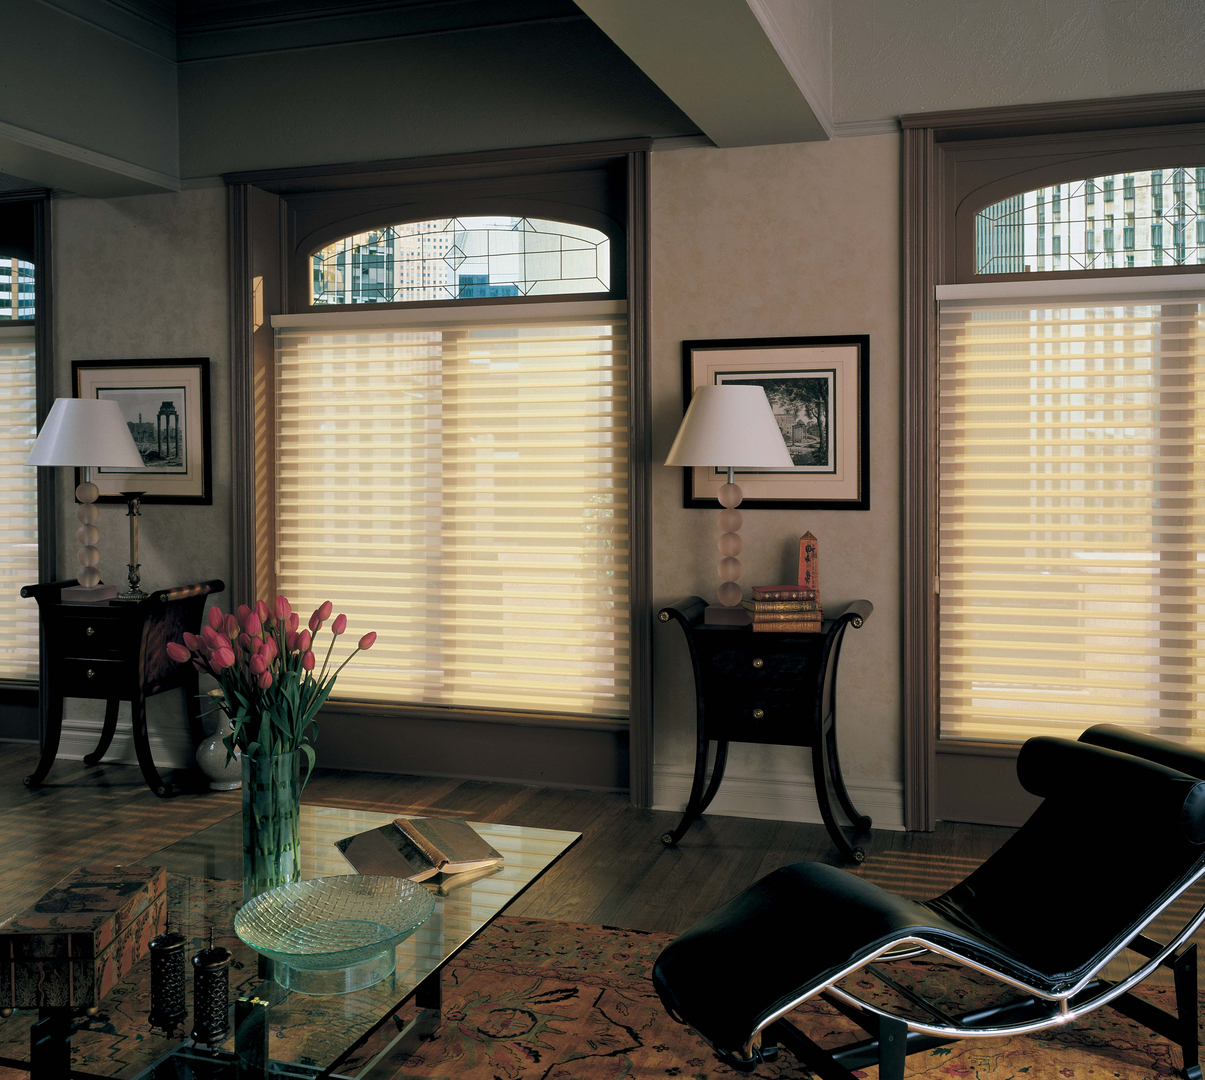 andover twf alta window fashions today slider s shades products blinds roller mn